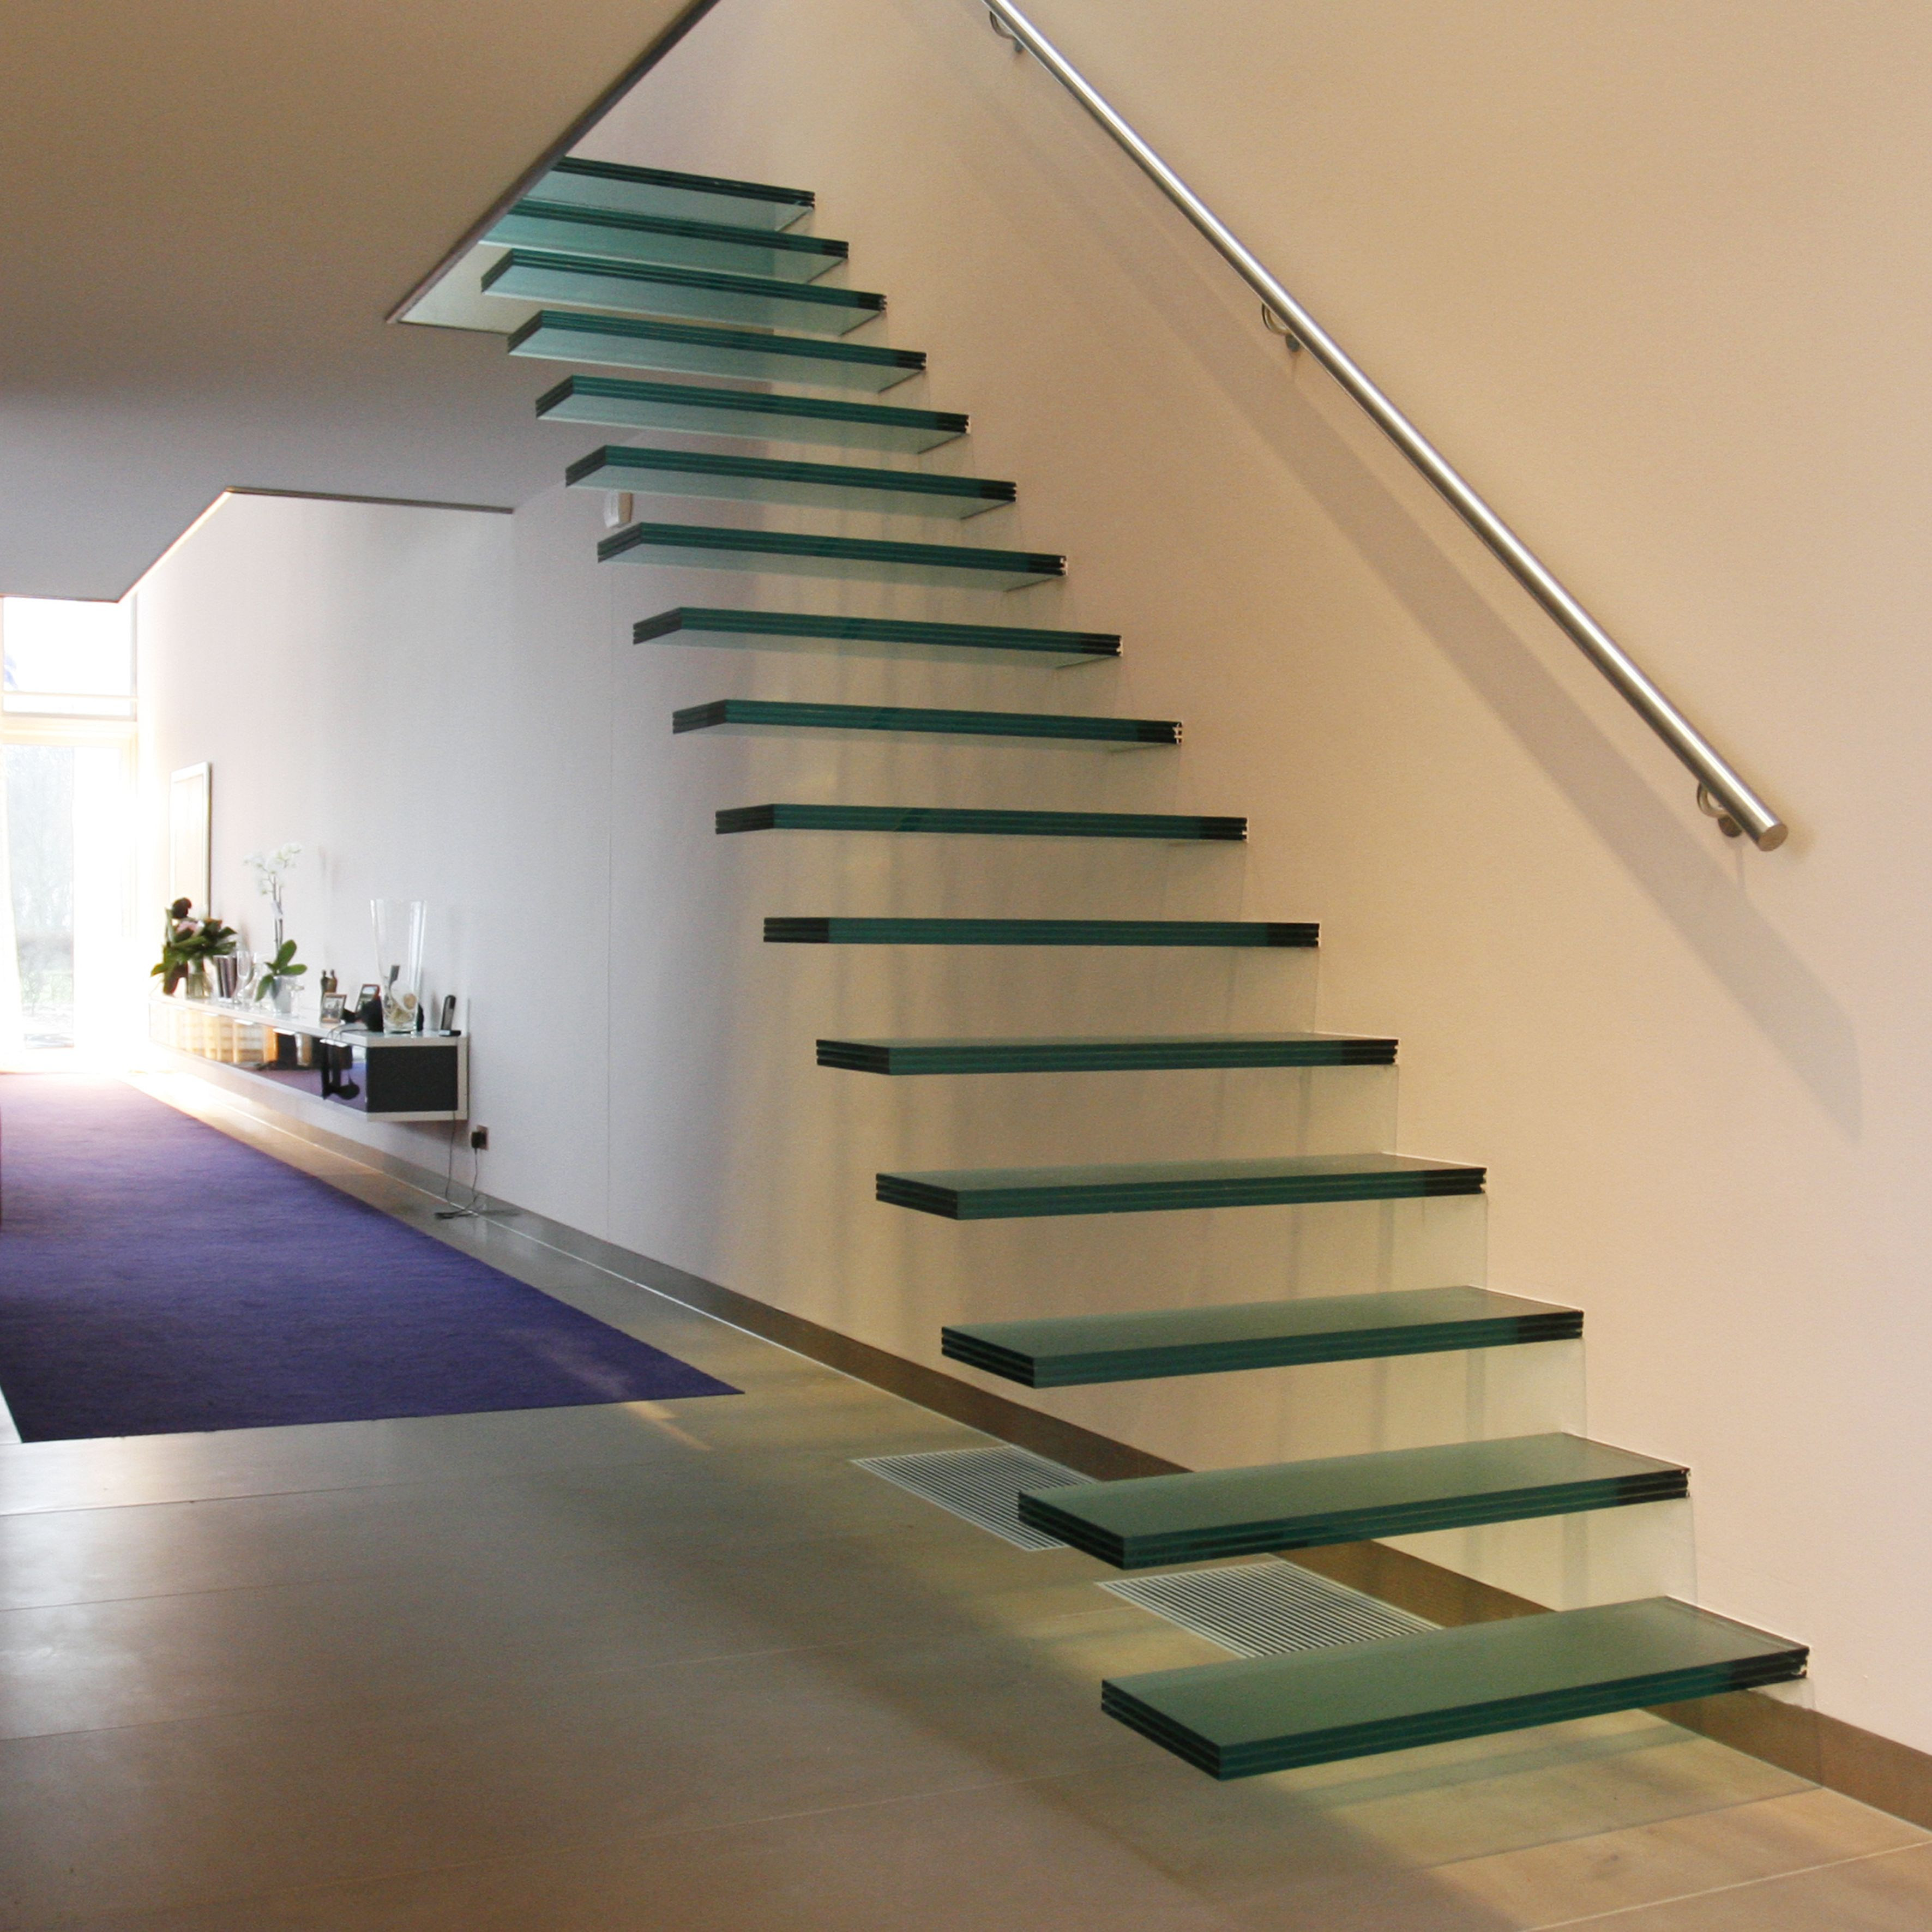 Designer Pages Floating Glass Staircase Glass Staircase | Glass Stair Treads Cost | Floating | Steel | Handrail | Hardwood | Wood